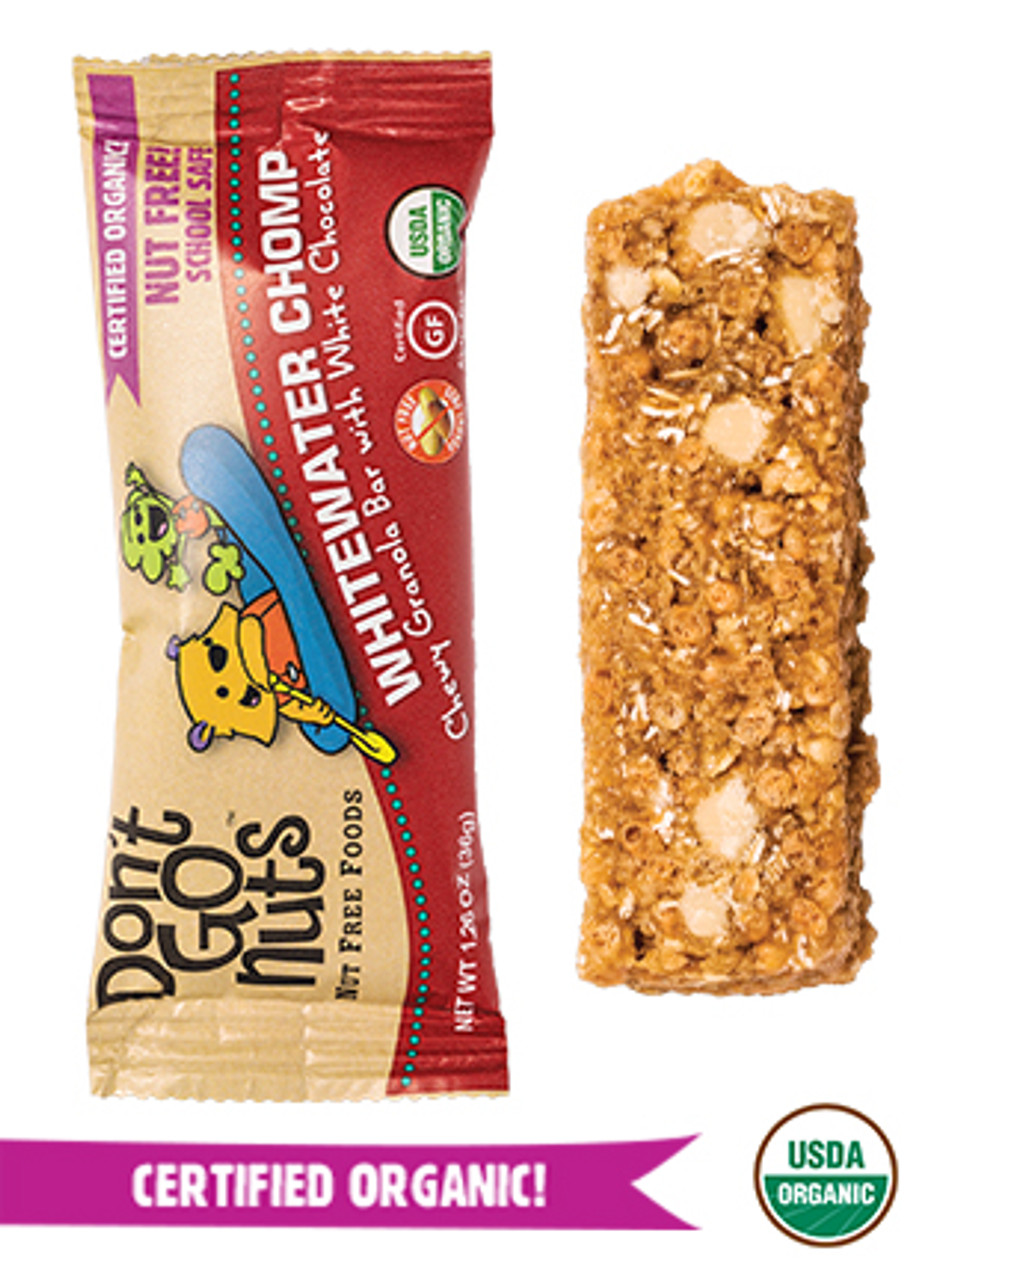 WHITEWATER CHOMP BAR 5 count box by Don't Go Nuts